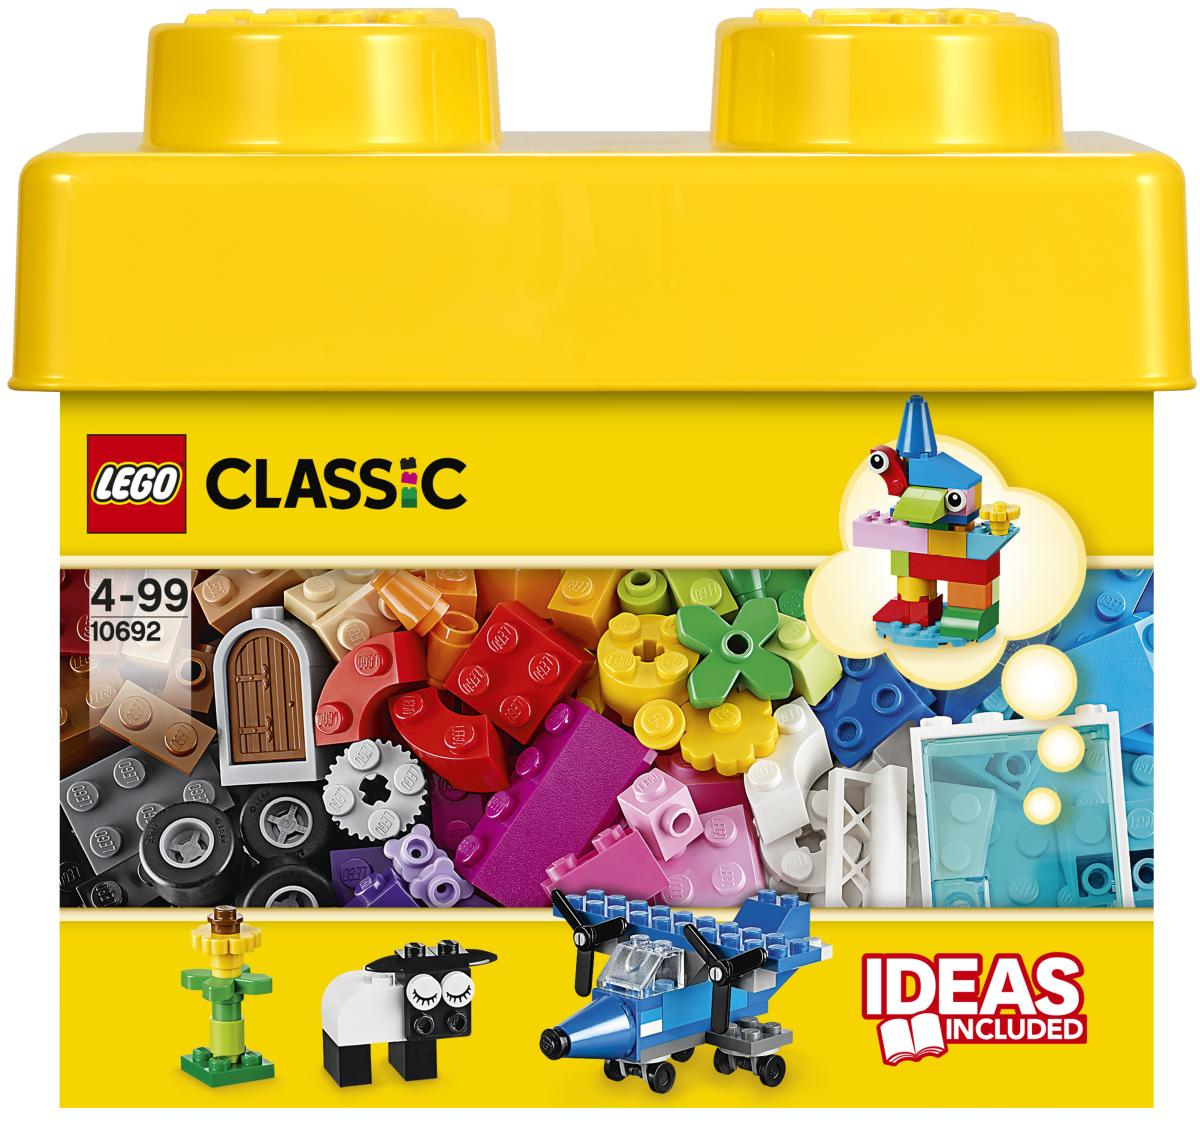 lego classic 10692 lego bausteine set g nstig online kaufen. Black Bedroom Furniture Sets. Home Design Ideas